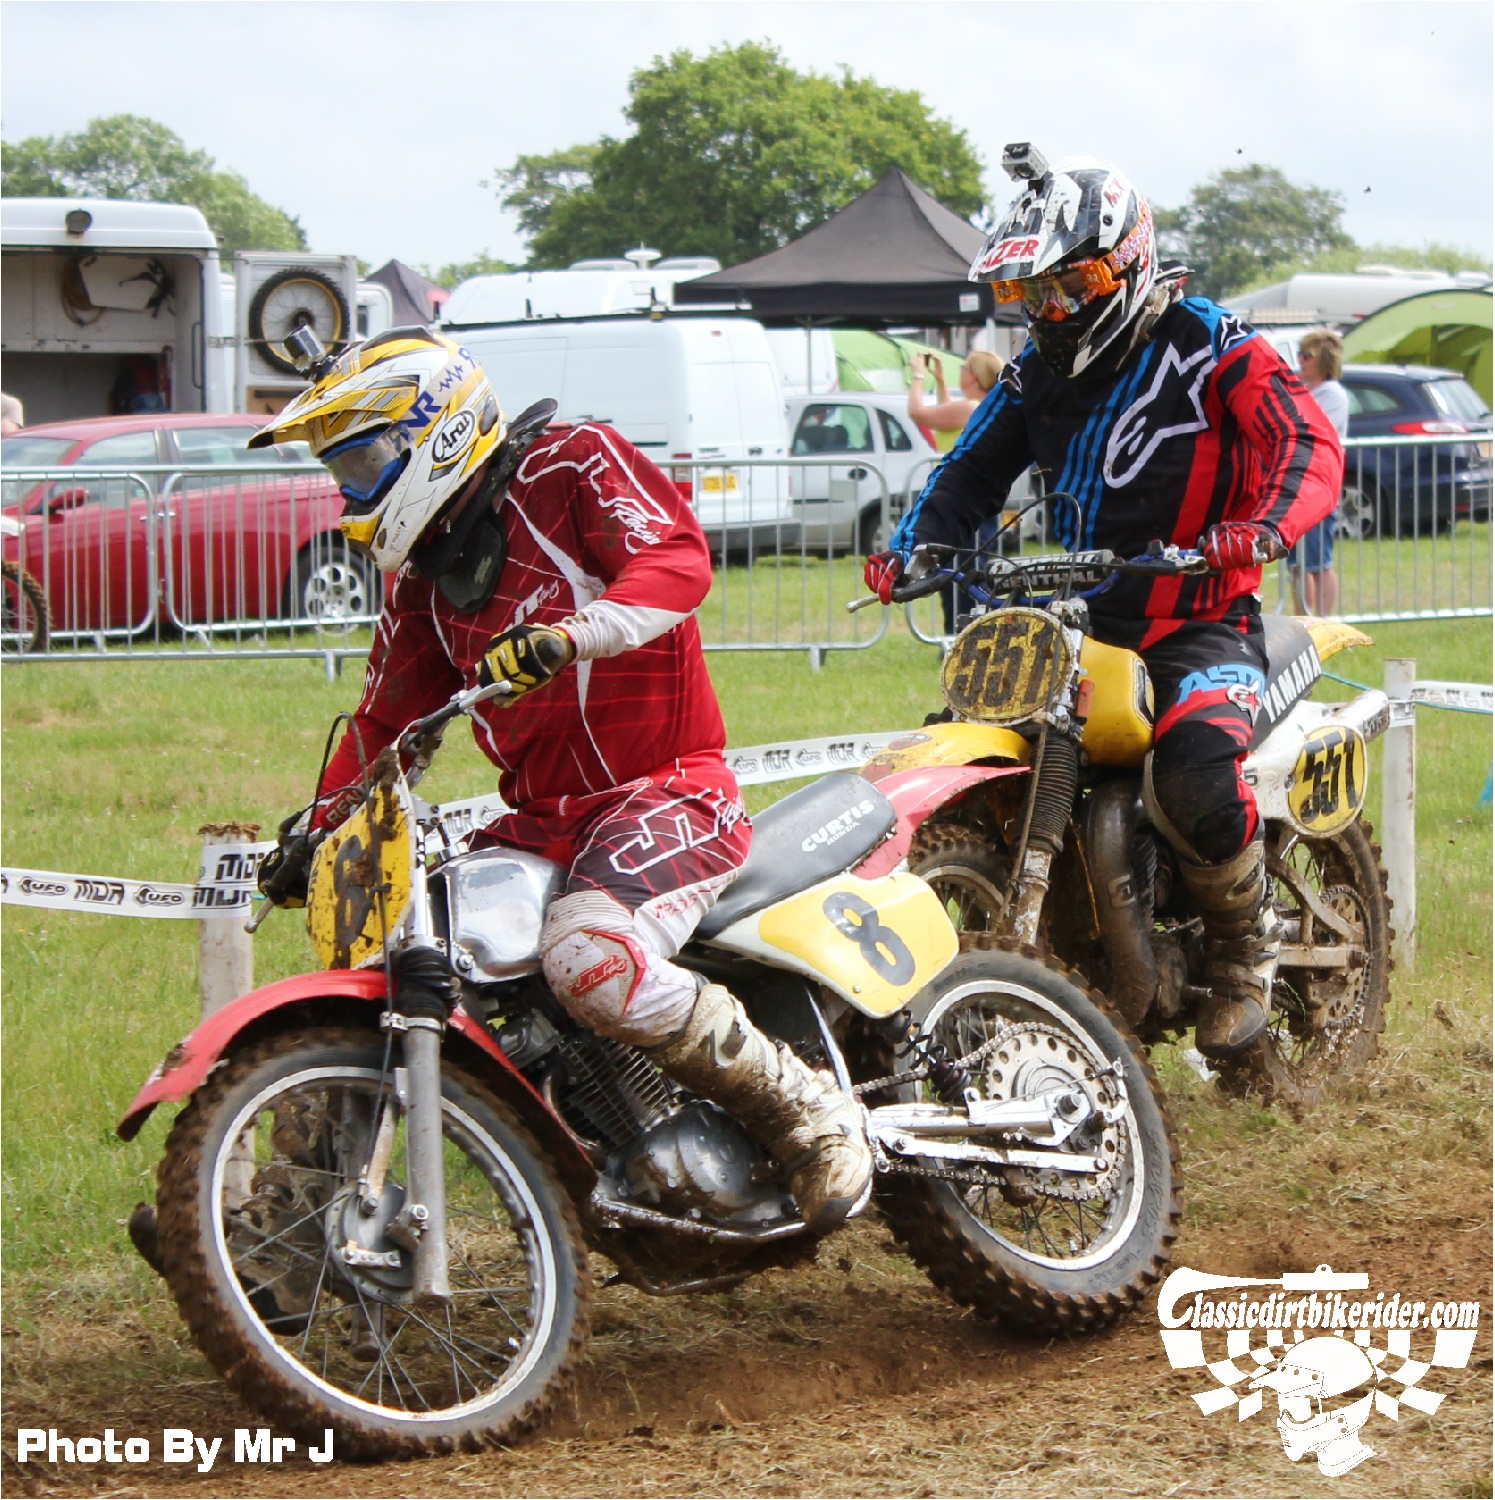 king of the castle 2015 photos Farleigh Castle twinshock motocross classicdirtbikerider.com 27